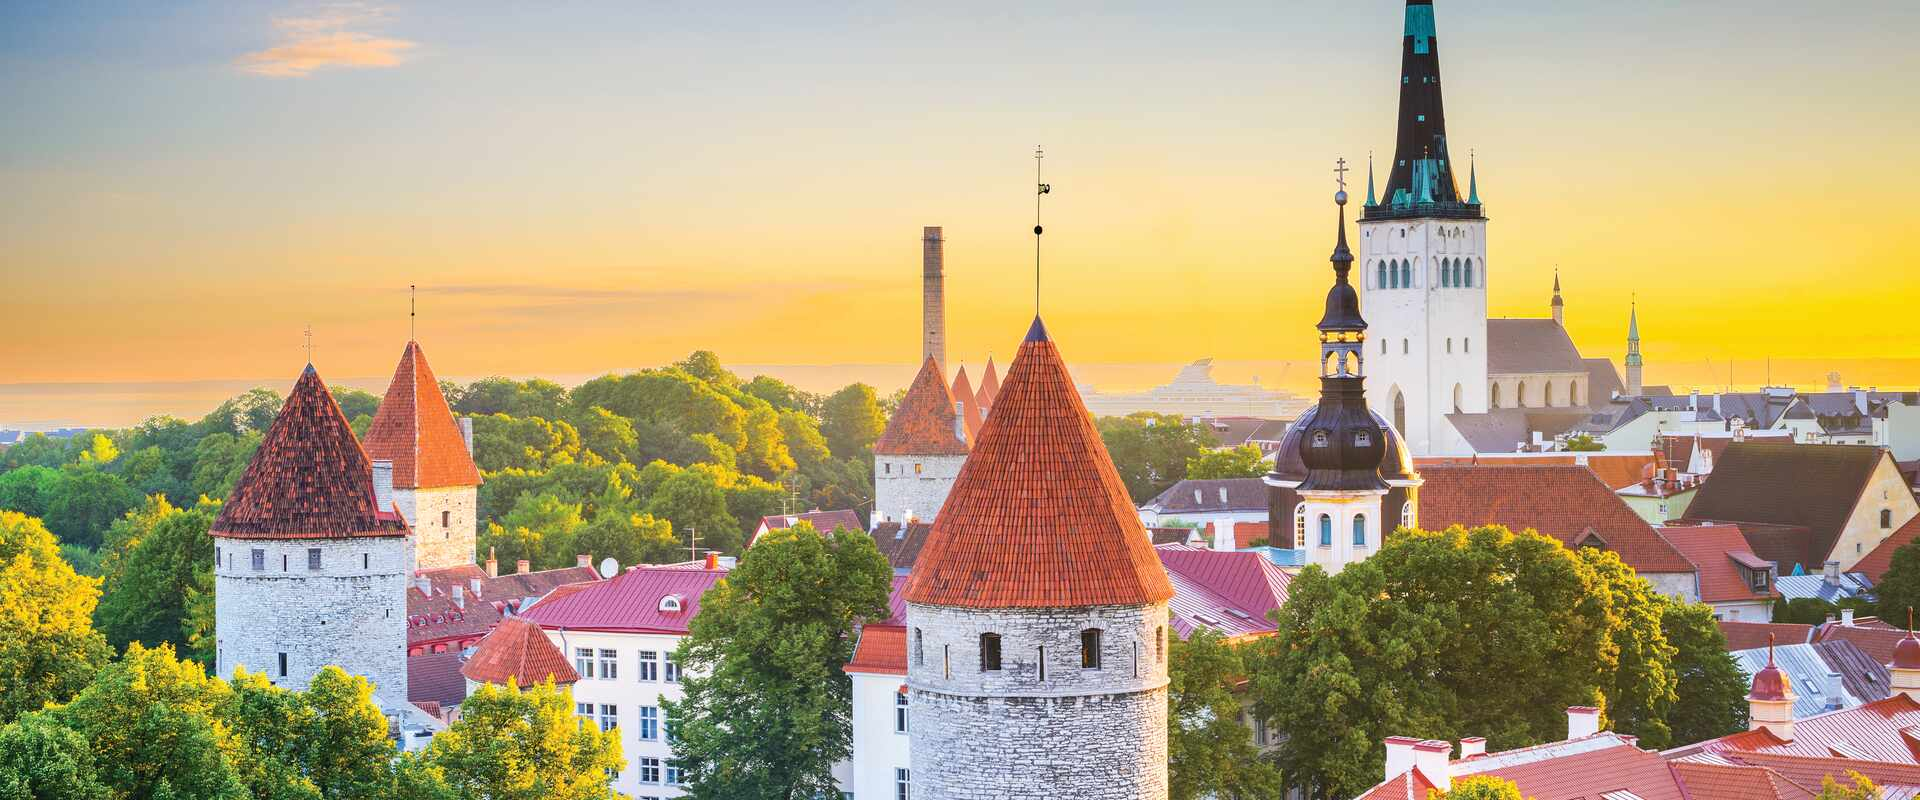 View of Tallinn Old Town, Estonia